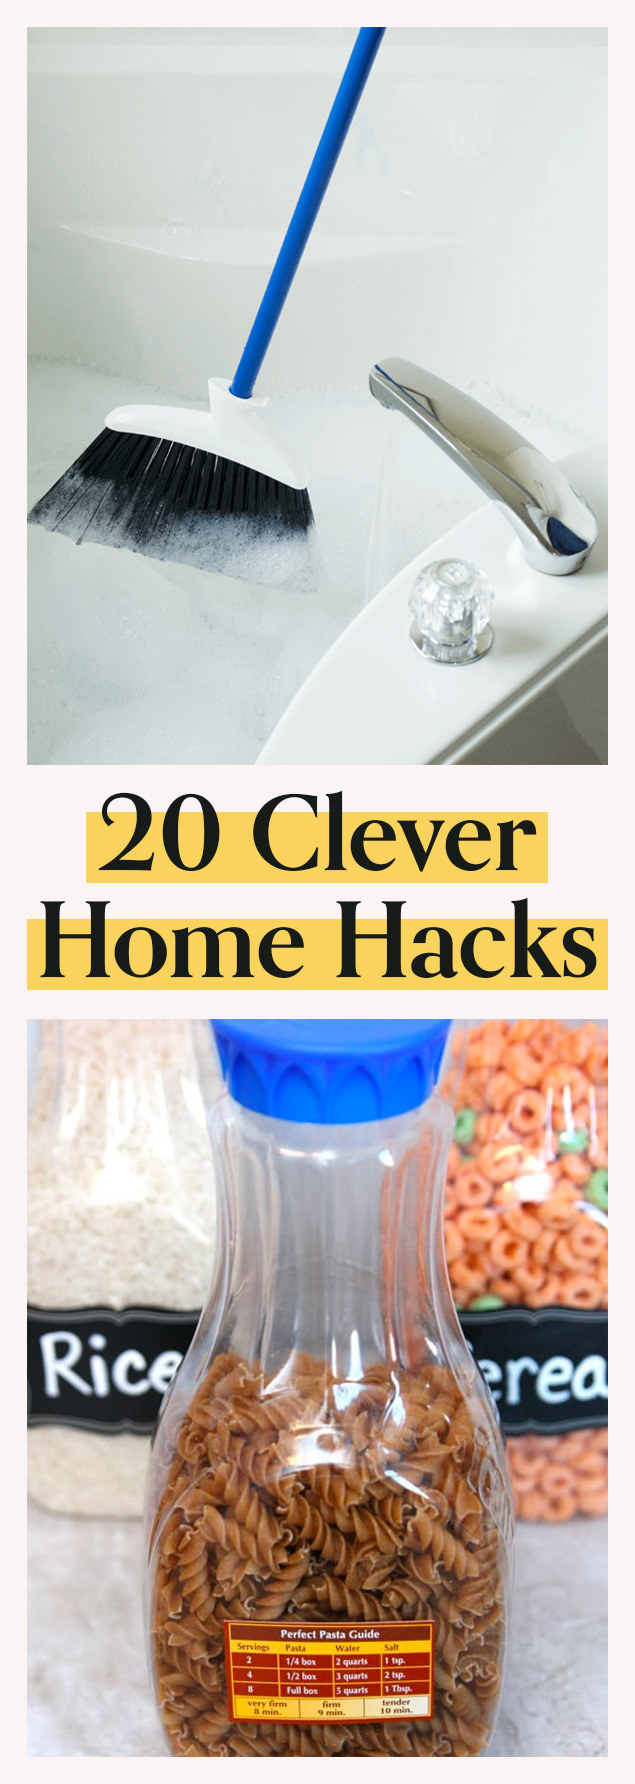 20 Hacks That'll Make Your Home Cleaner And More Organized